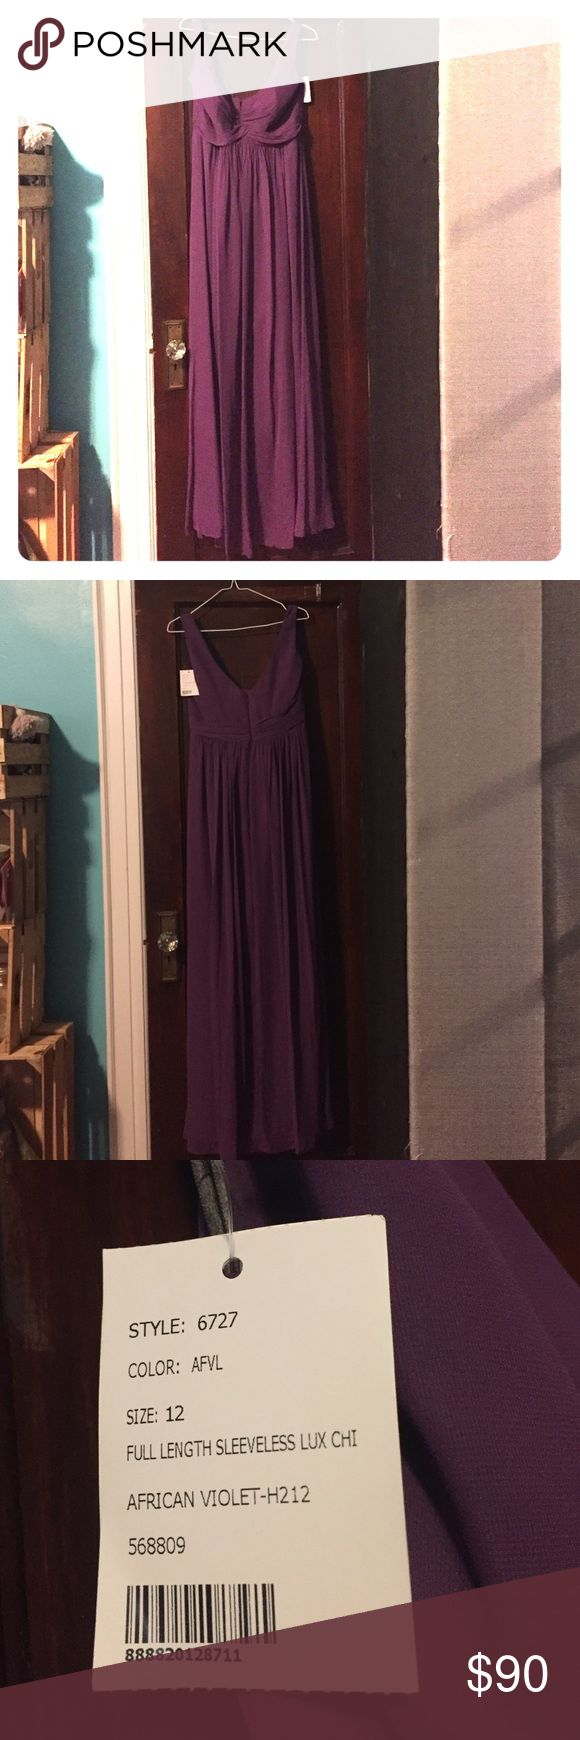 African violet 6272 After Six Bridesmaid dress African violet bridesmaid gown. Never warn. Never altered. Tags on. Dresses Wedding